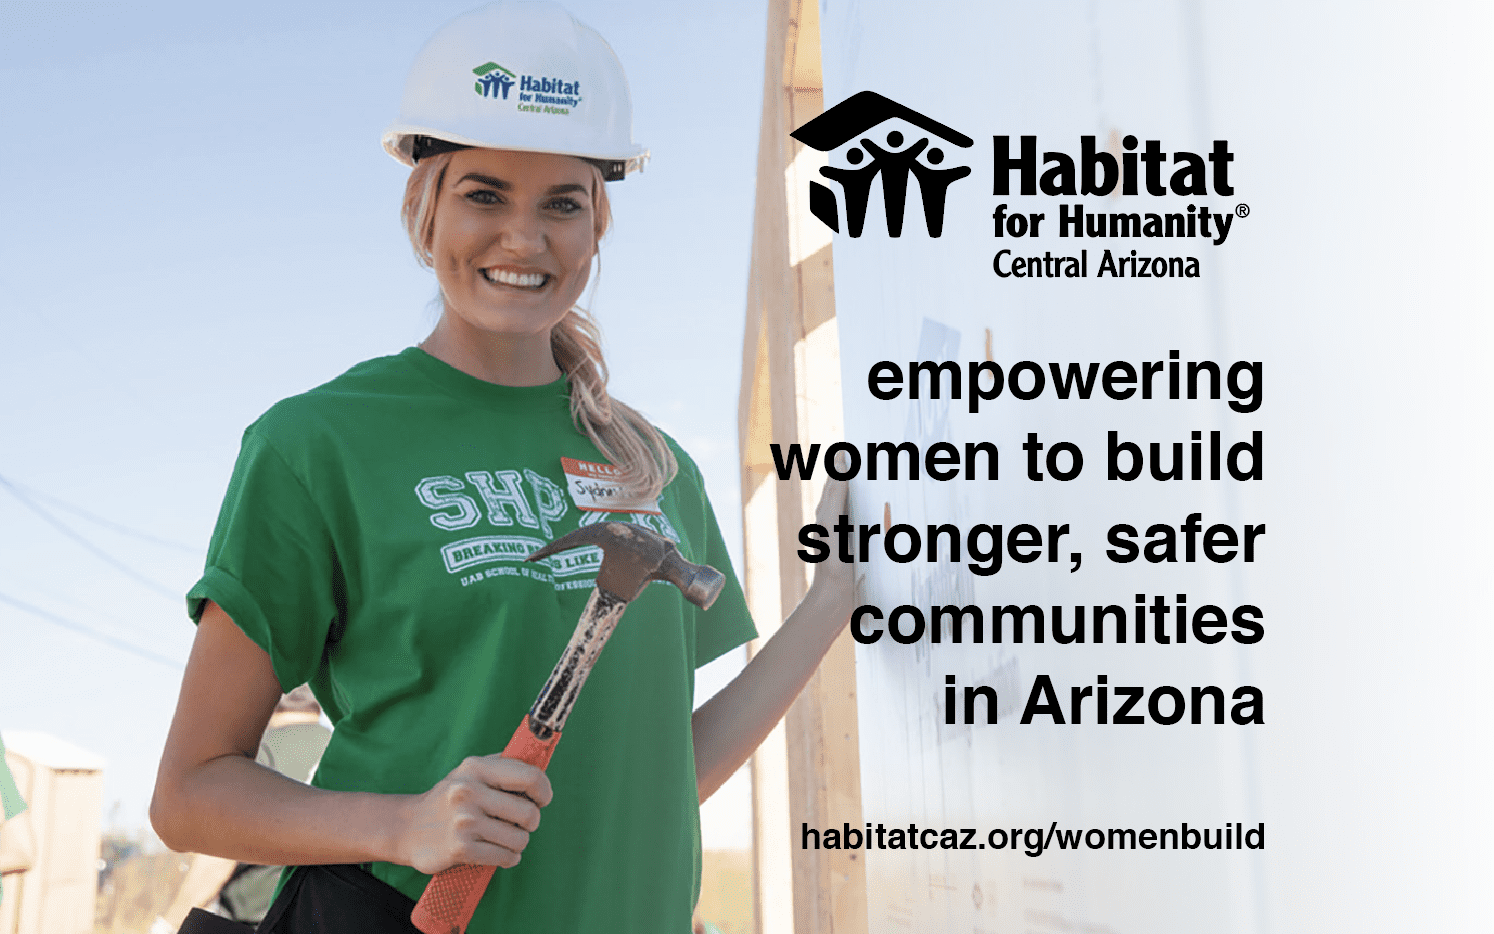 Women coming together to build stronger, safer communities in Arizona